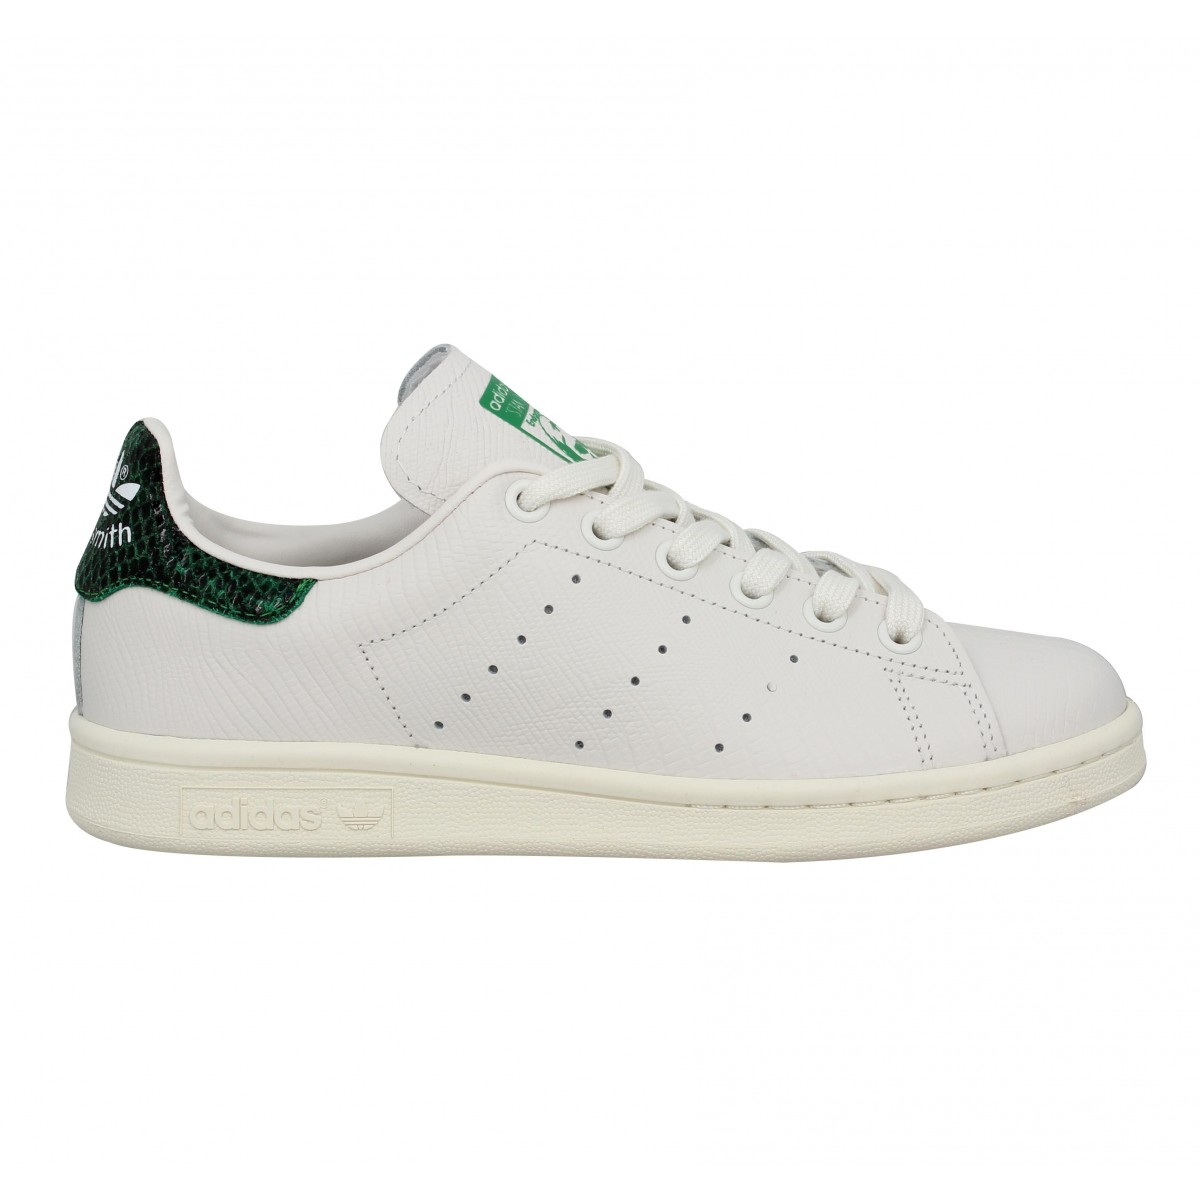 adidas chaussures adidas chaussure wikipedia. Black Bedroom Furniture Sets. Home Design Ideas